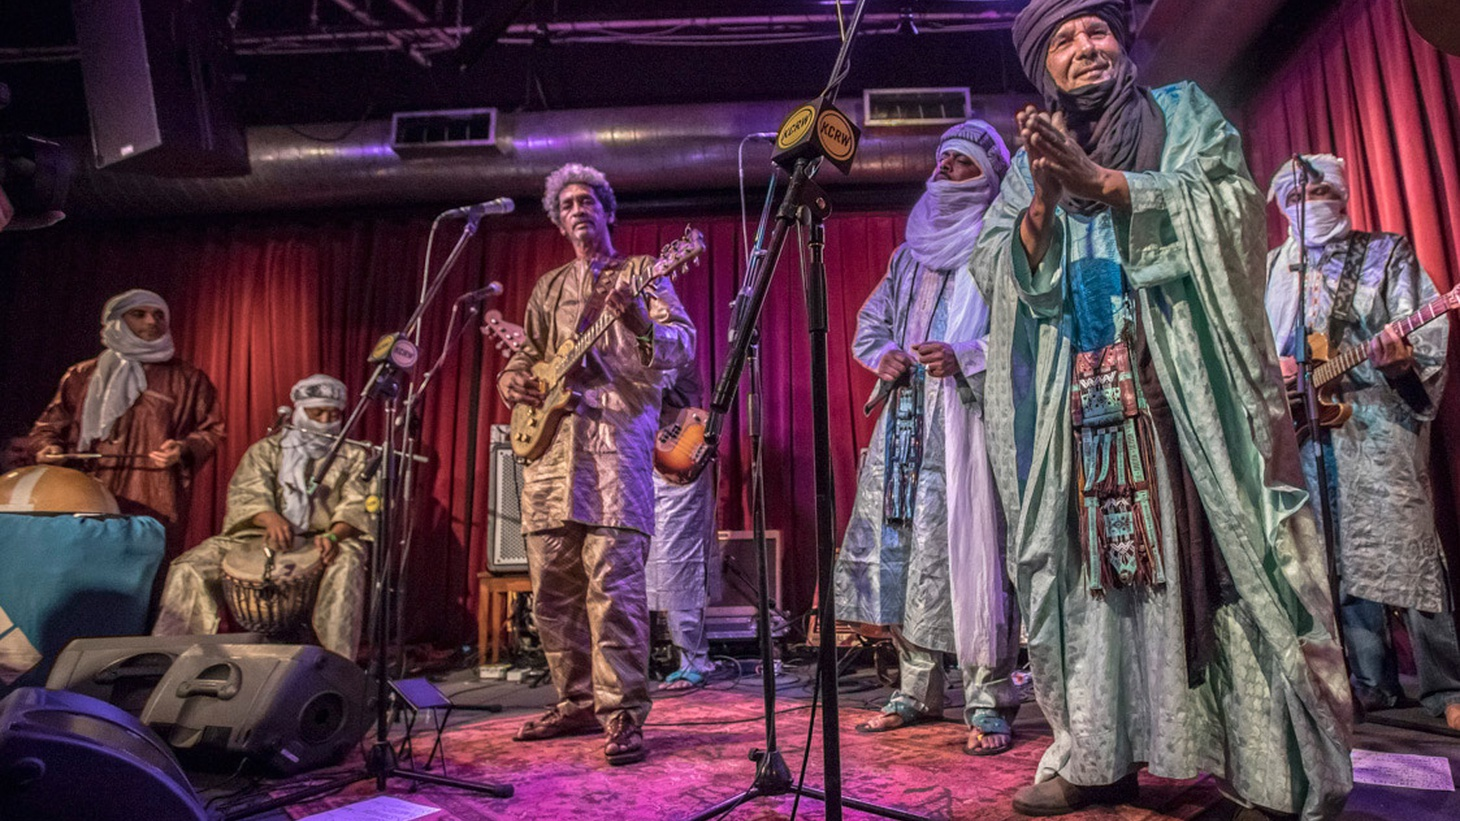 Nomadic musicians from the Saharan region of northwest Africa, the members of Tinariwen have been sharing their particular brand of desert blues since 1979.